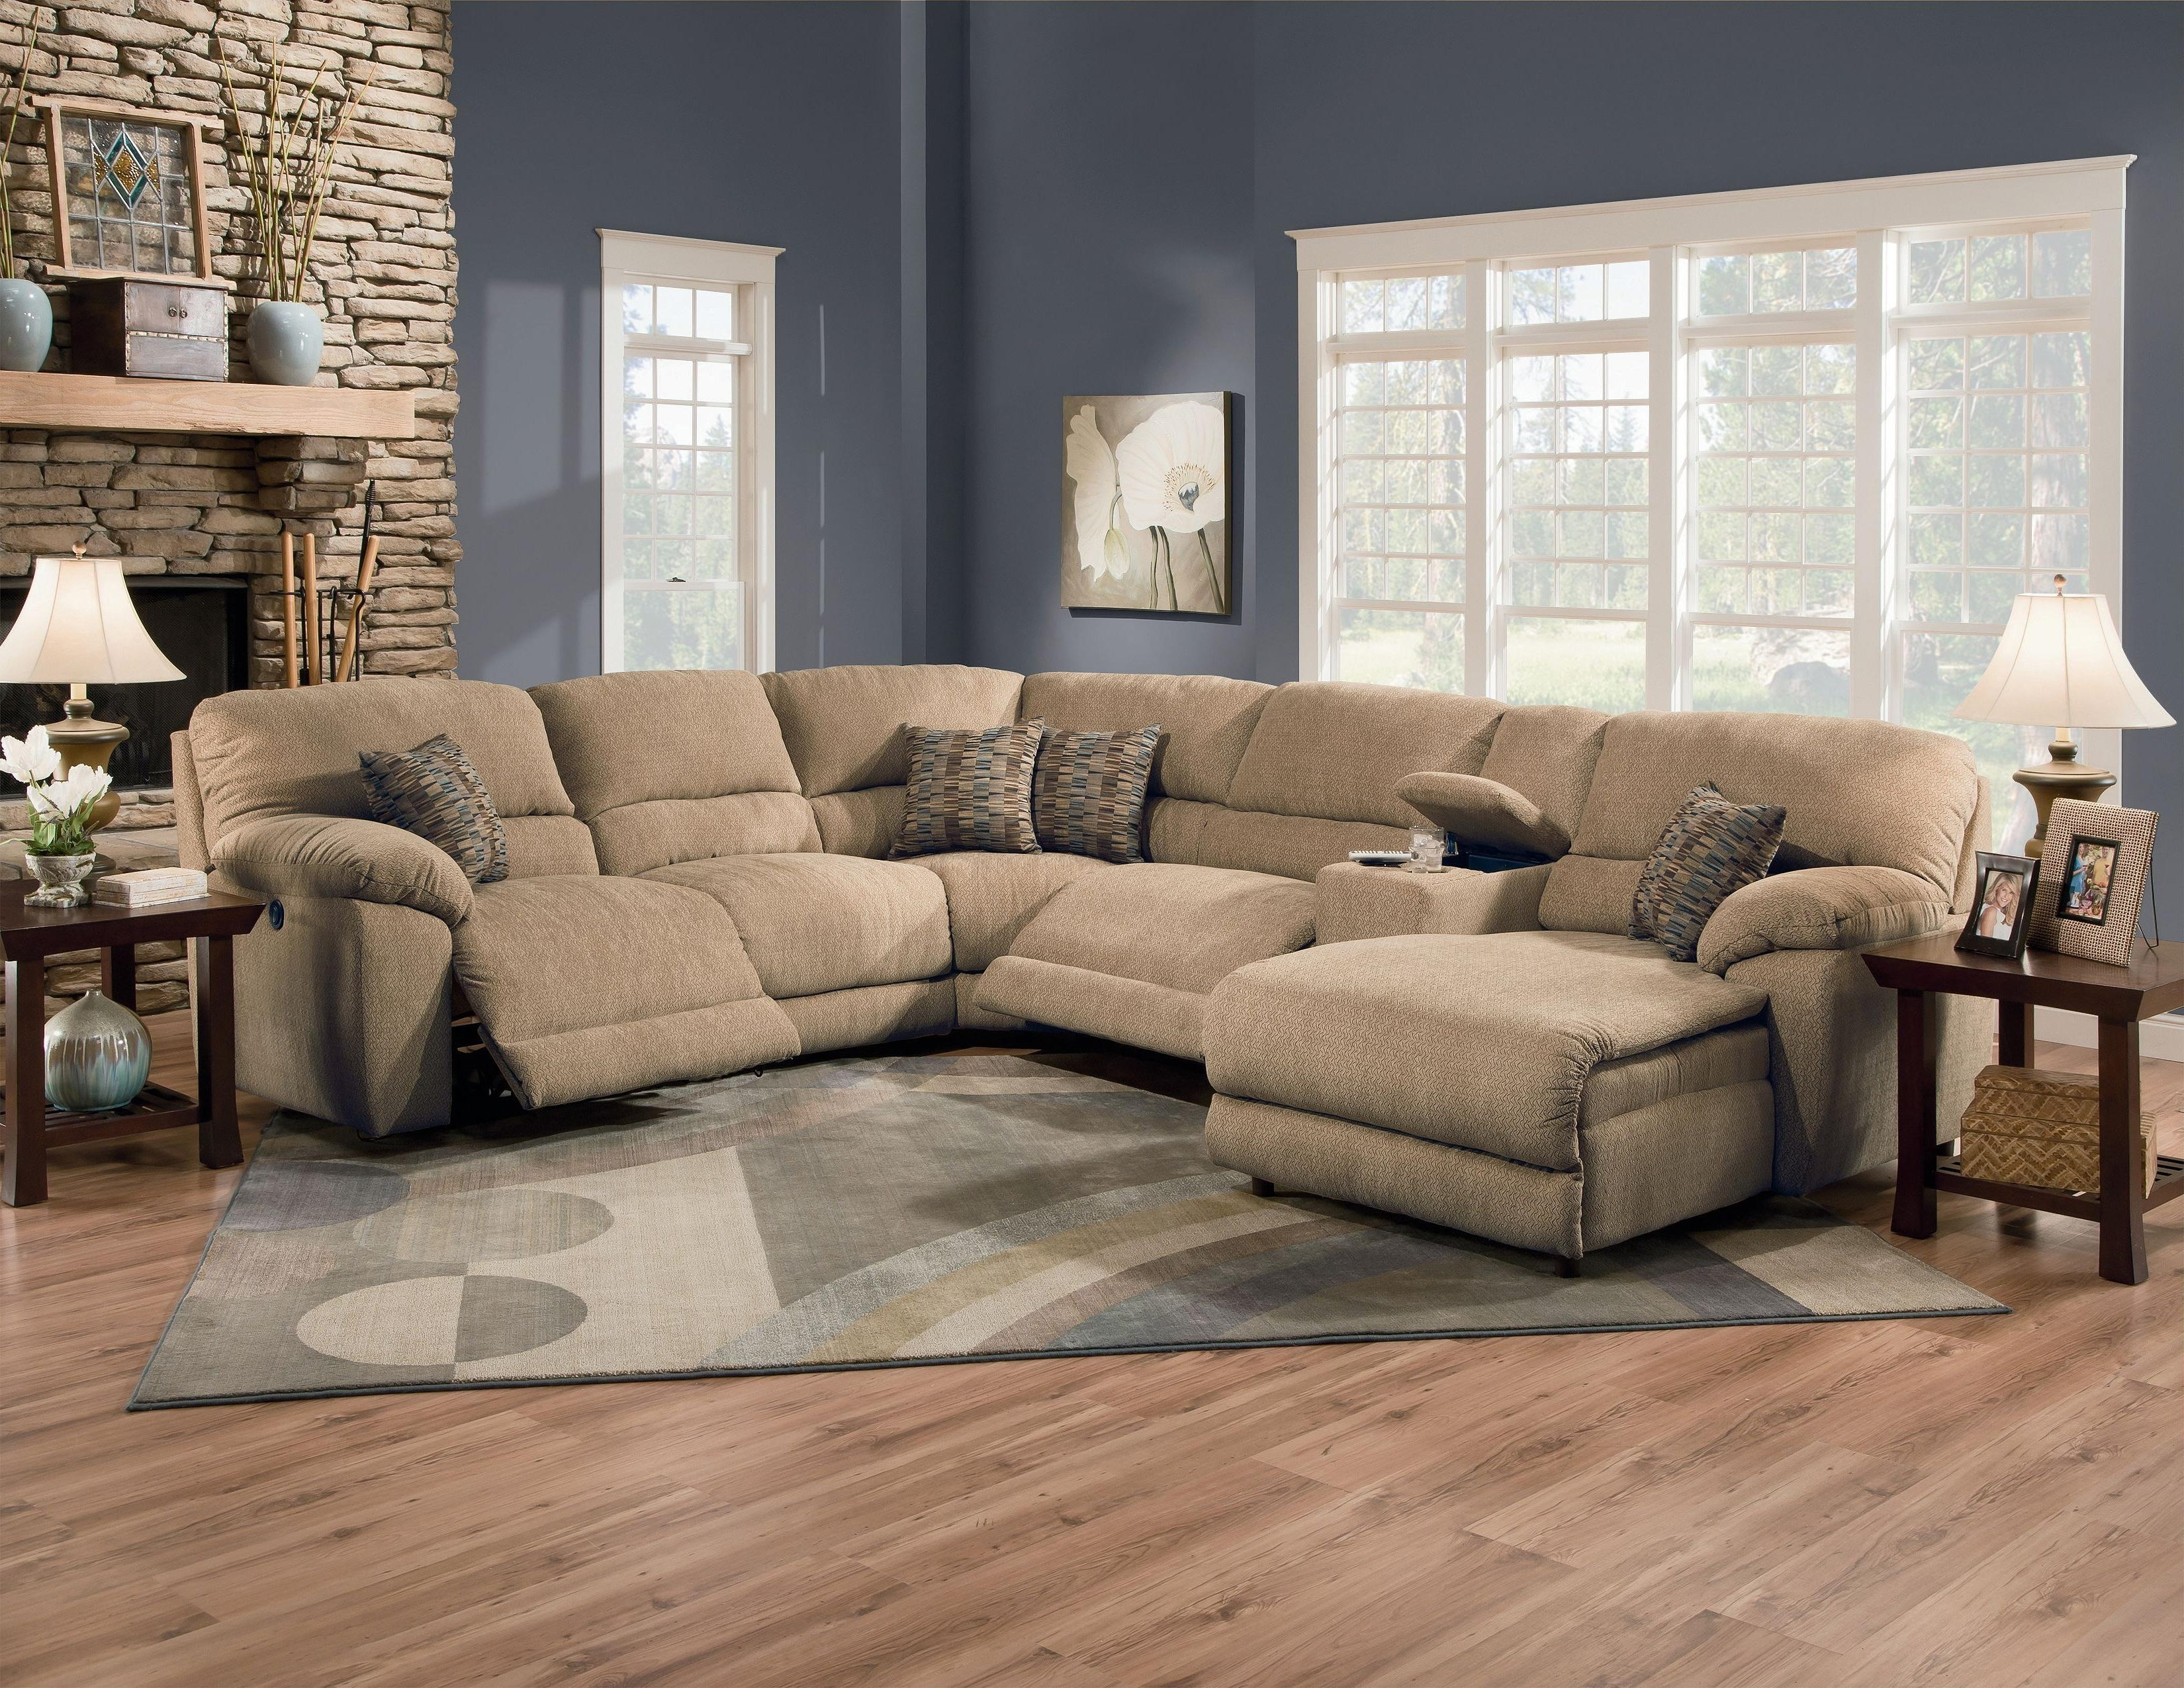 Famous Nashville Sectional Sofas With Lane Furniture: Rivers Collection Featuring Power Reclining (View 4 of 15)